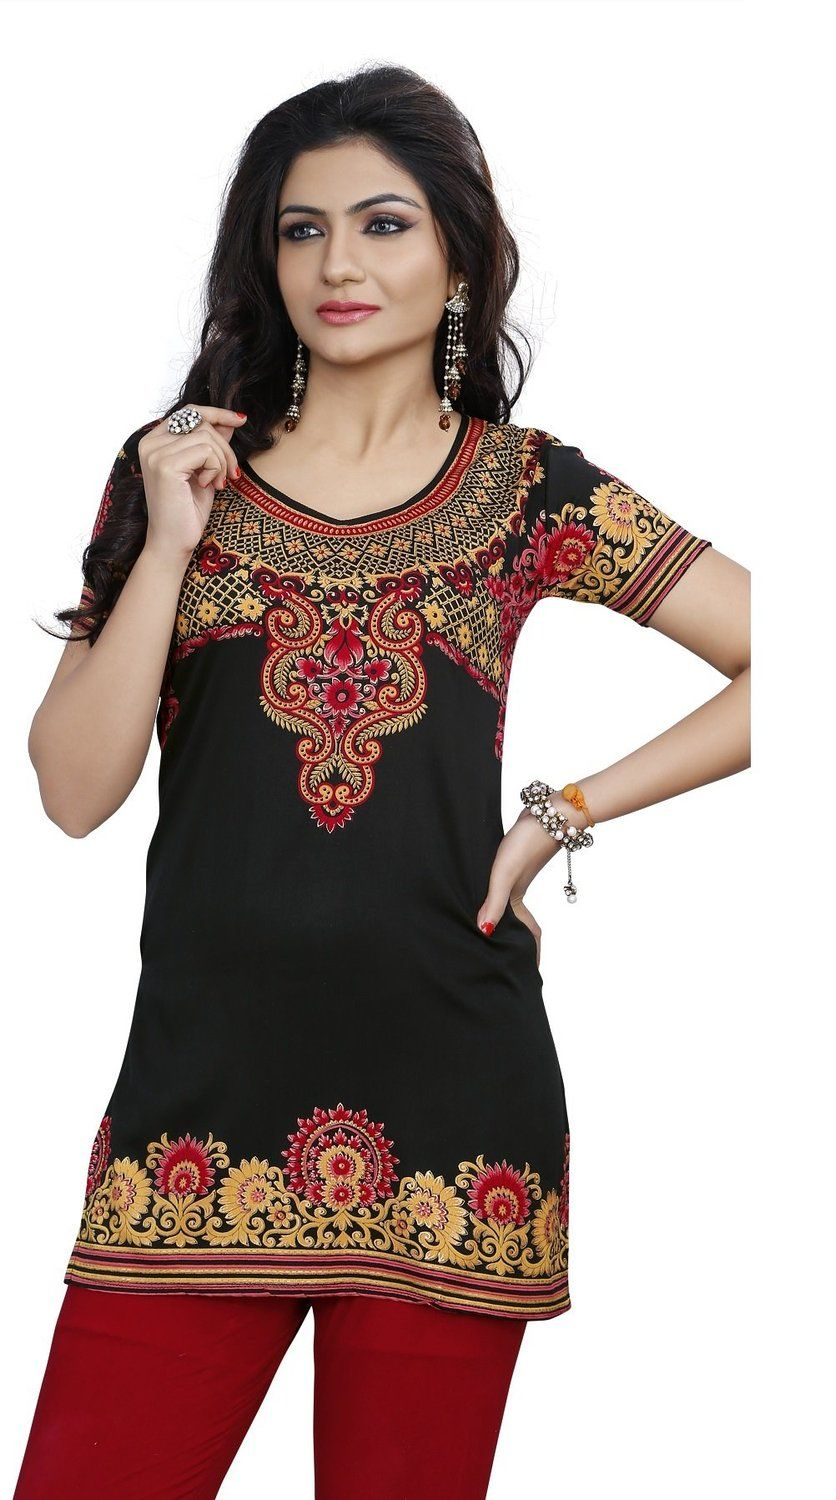 bf36ed09a26 Amazon.com  Indian Tunic Top Womens Kurti Printed Blouse India Clothing -  41 Designs!  Clothing